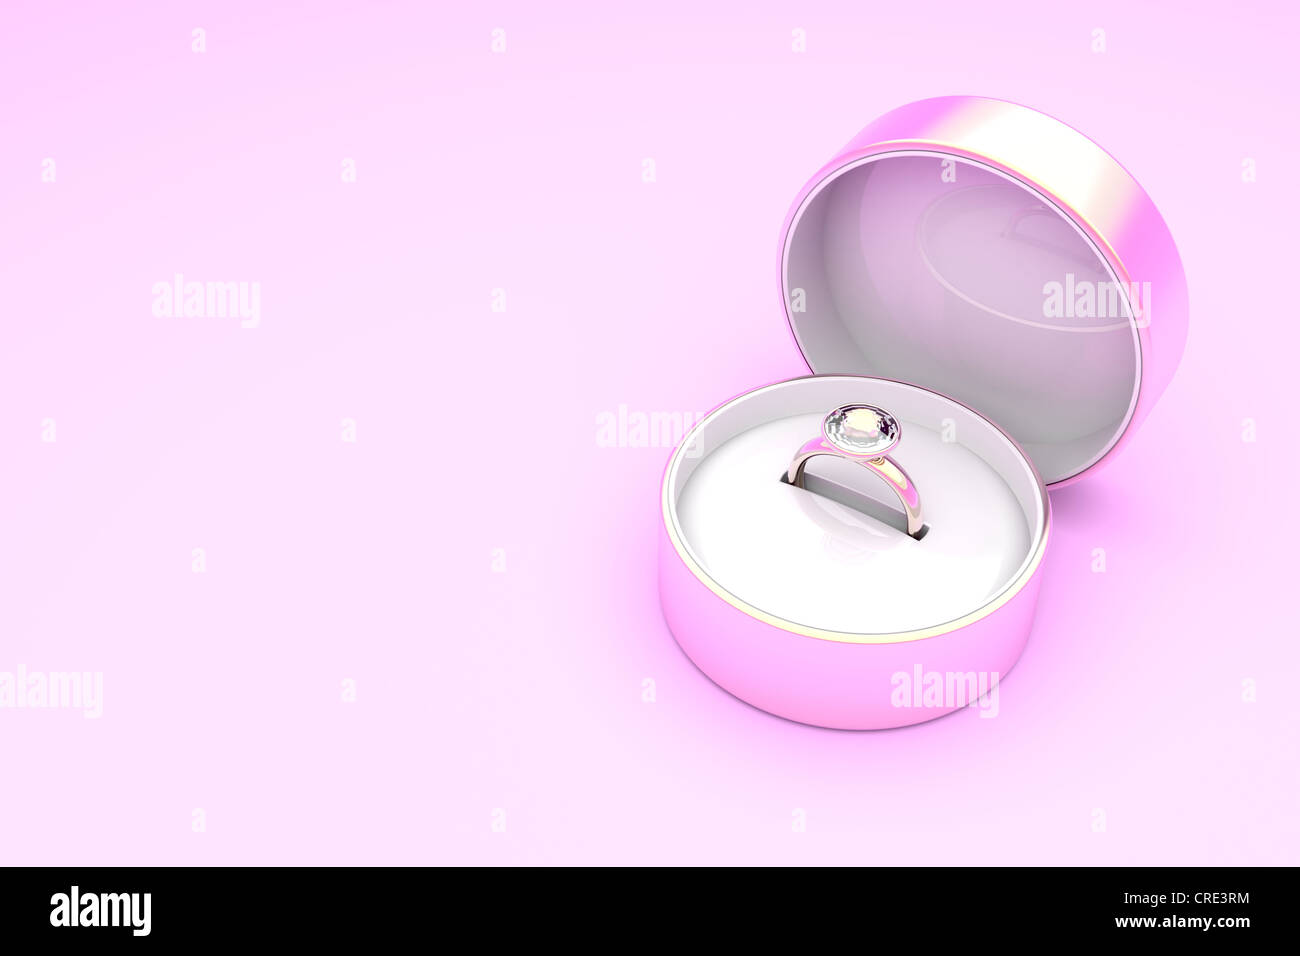 Gold Ring Box Stock Photos & Gold Ring Box Stock Images - Alamy